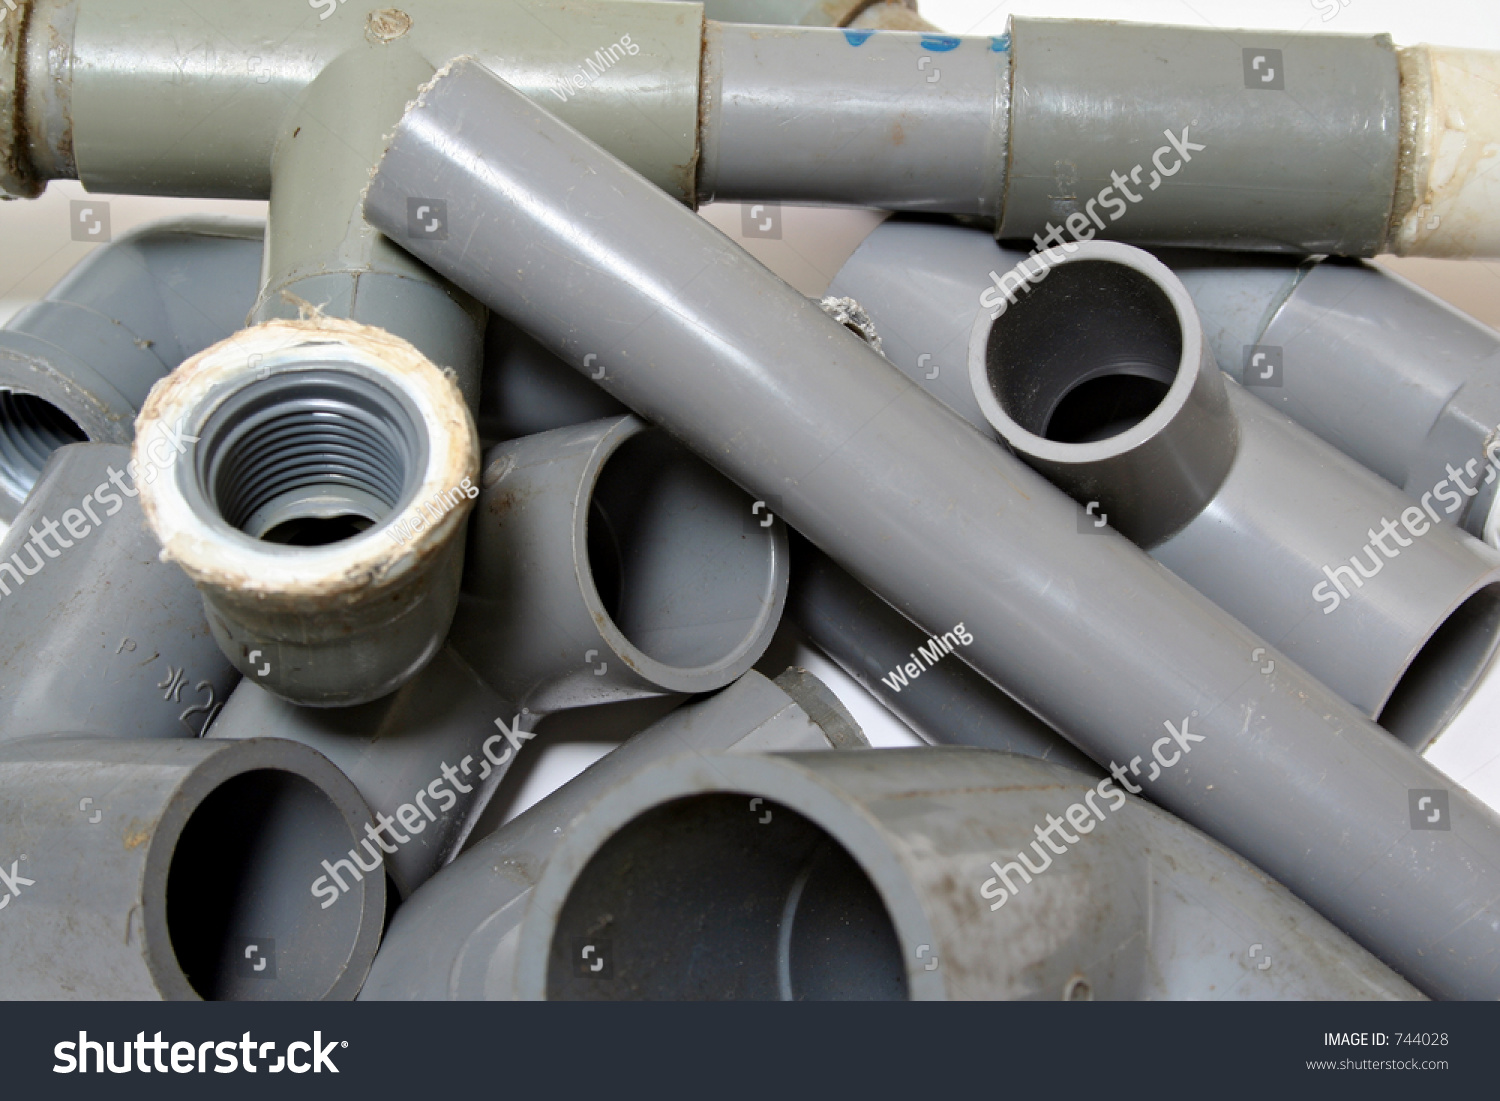 Pvc Joints Assortment Pvc Piping Joints Stock Photo Edit Now 744028